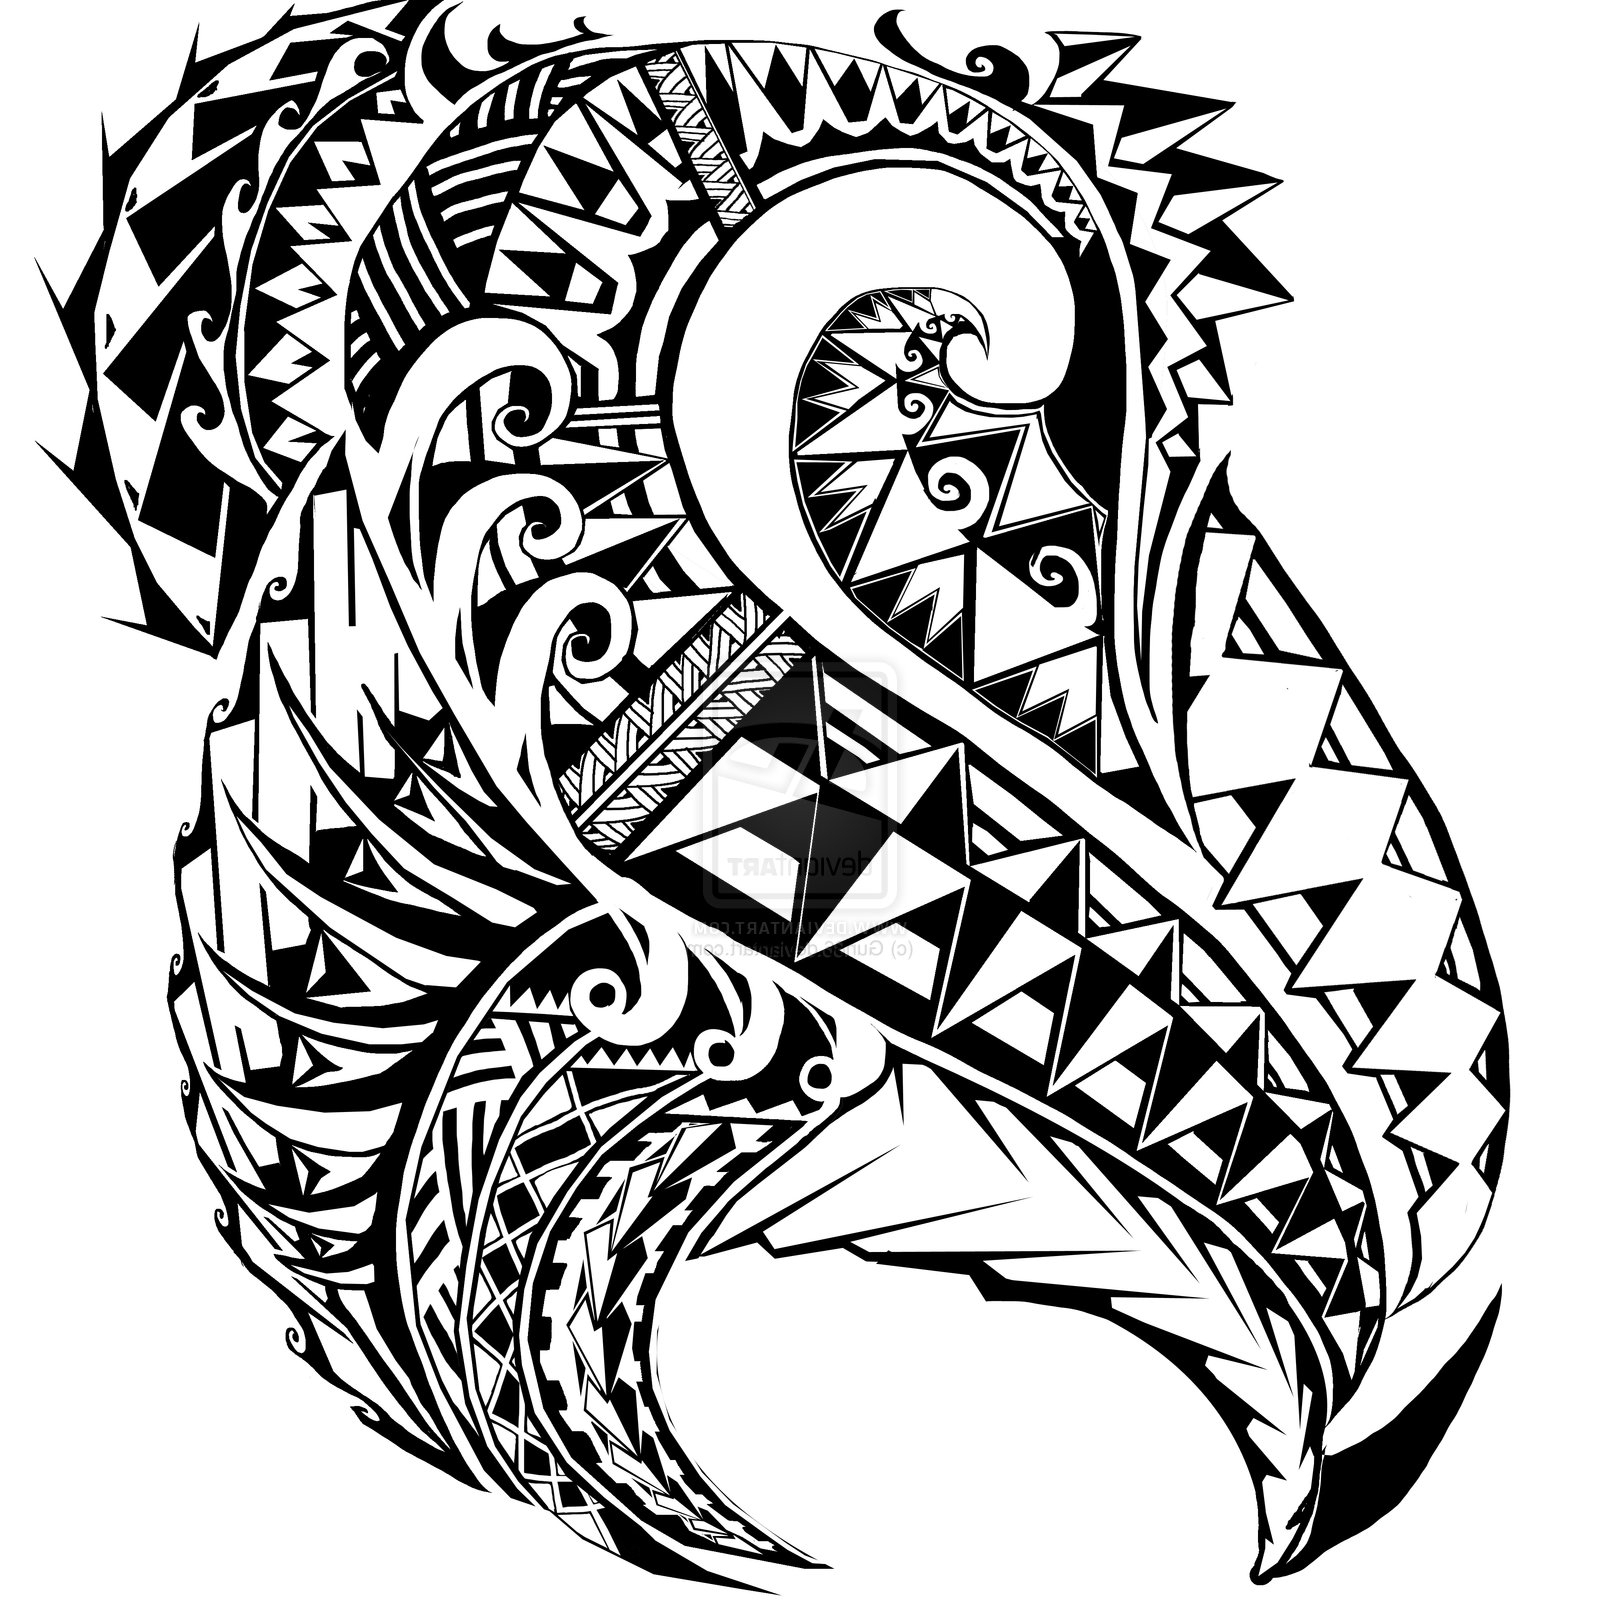 1600x1600 Samoan Flower Tattoo Designs 1000+ Images About Tatoos On